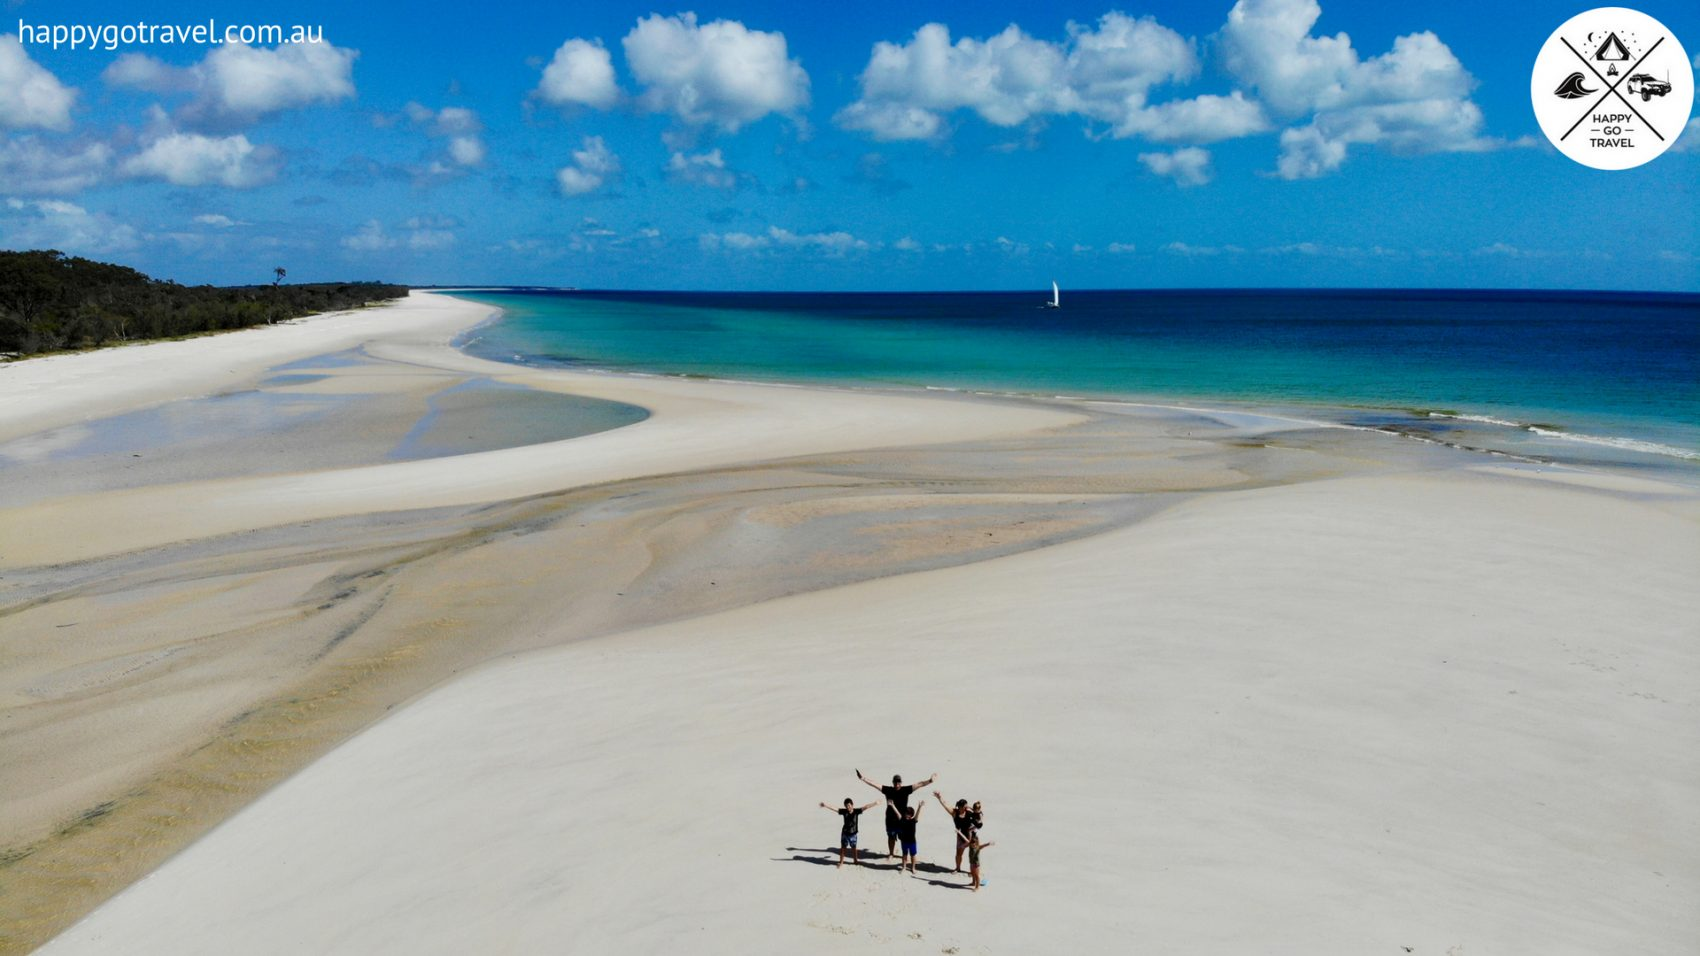 aerial view of Happy Go Travel family on Fraser Island western beach